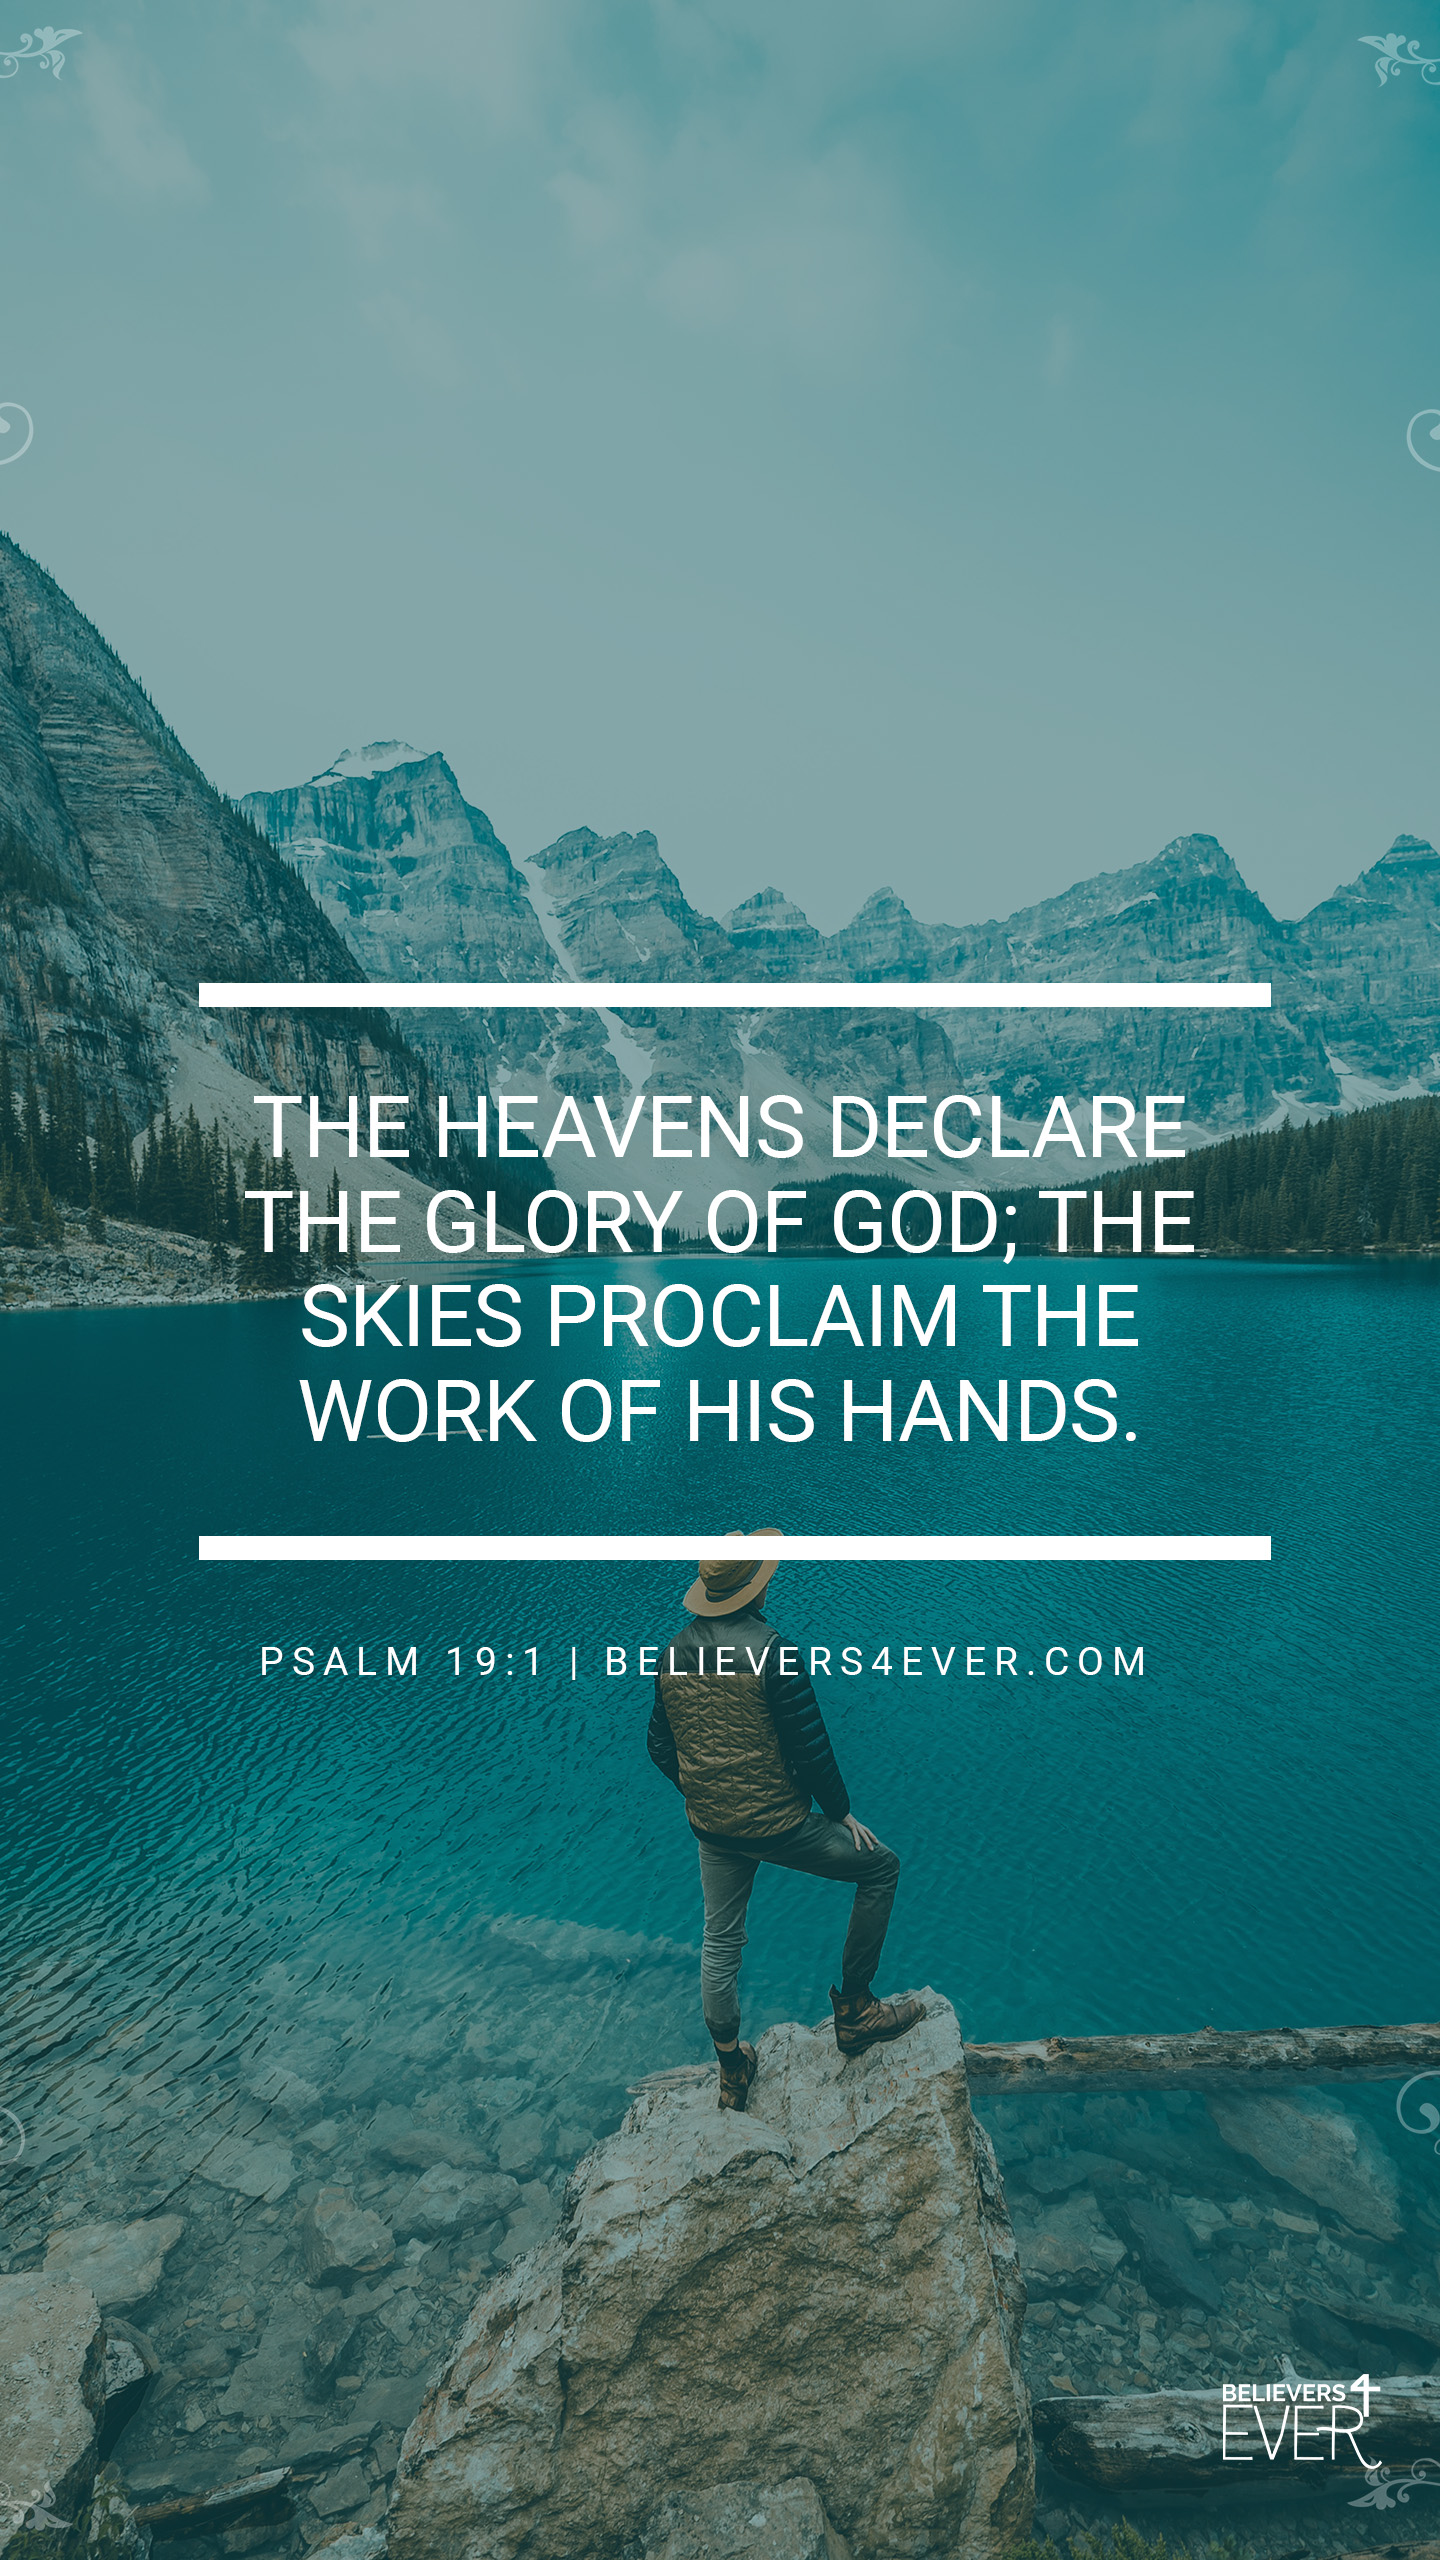 The heavens declare Psalm 19:1